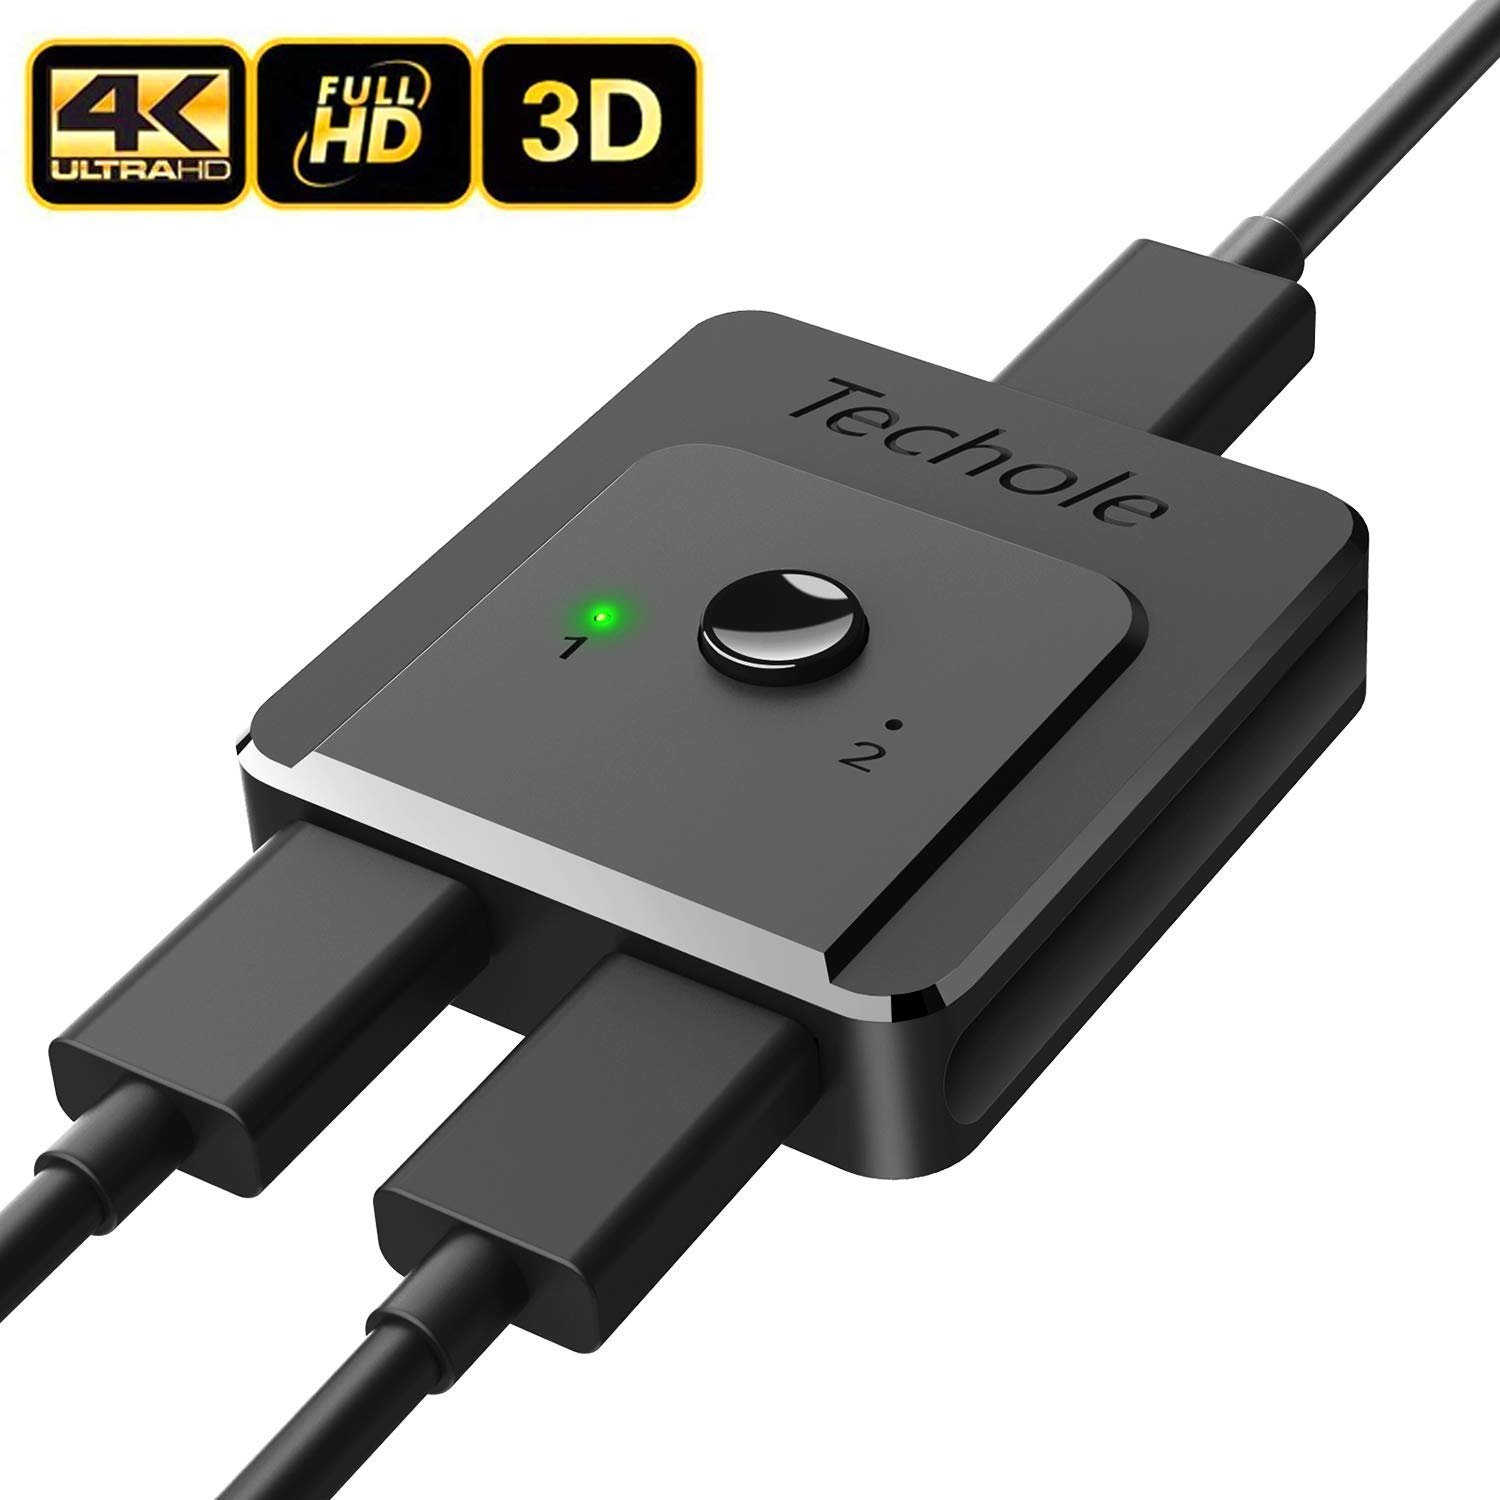 HDMI Switch 4K HDMI Splitter-Techole Updated Bi-Directional HDMI Switcher 1 in 2 Out or 2 in 1, HDMI Switch Splitter Supports 4K 3D HD 1080P for Xbox PS4 Fire Stick Roku HDTV(HDMI Cable NOT Include)